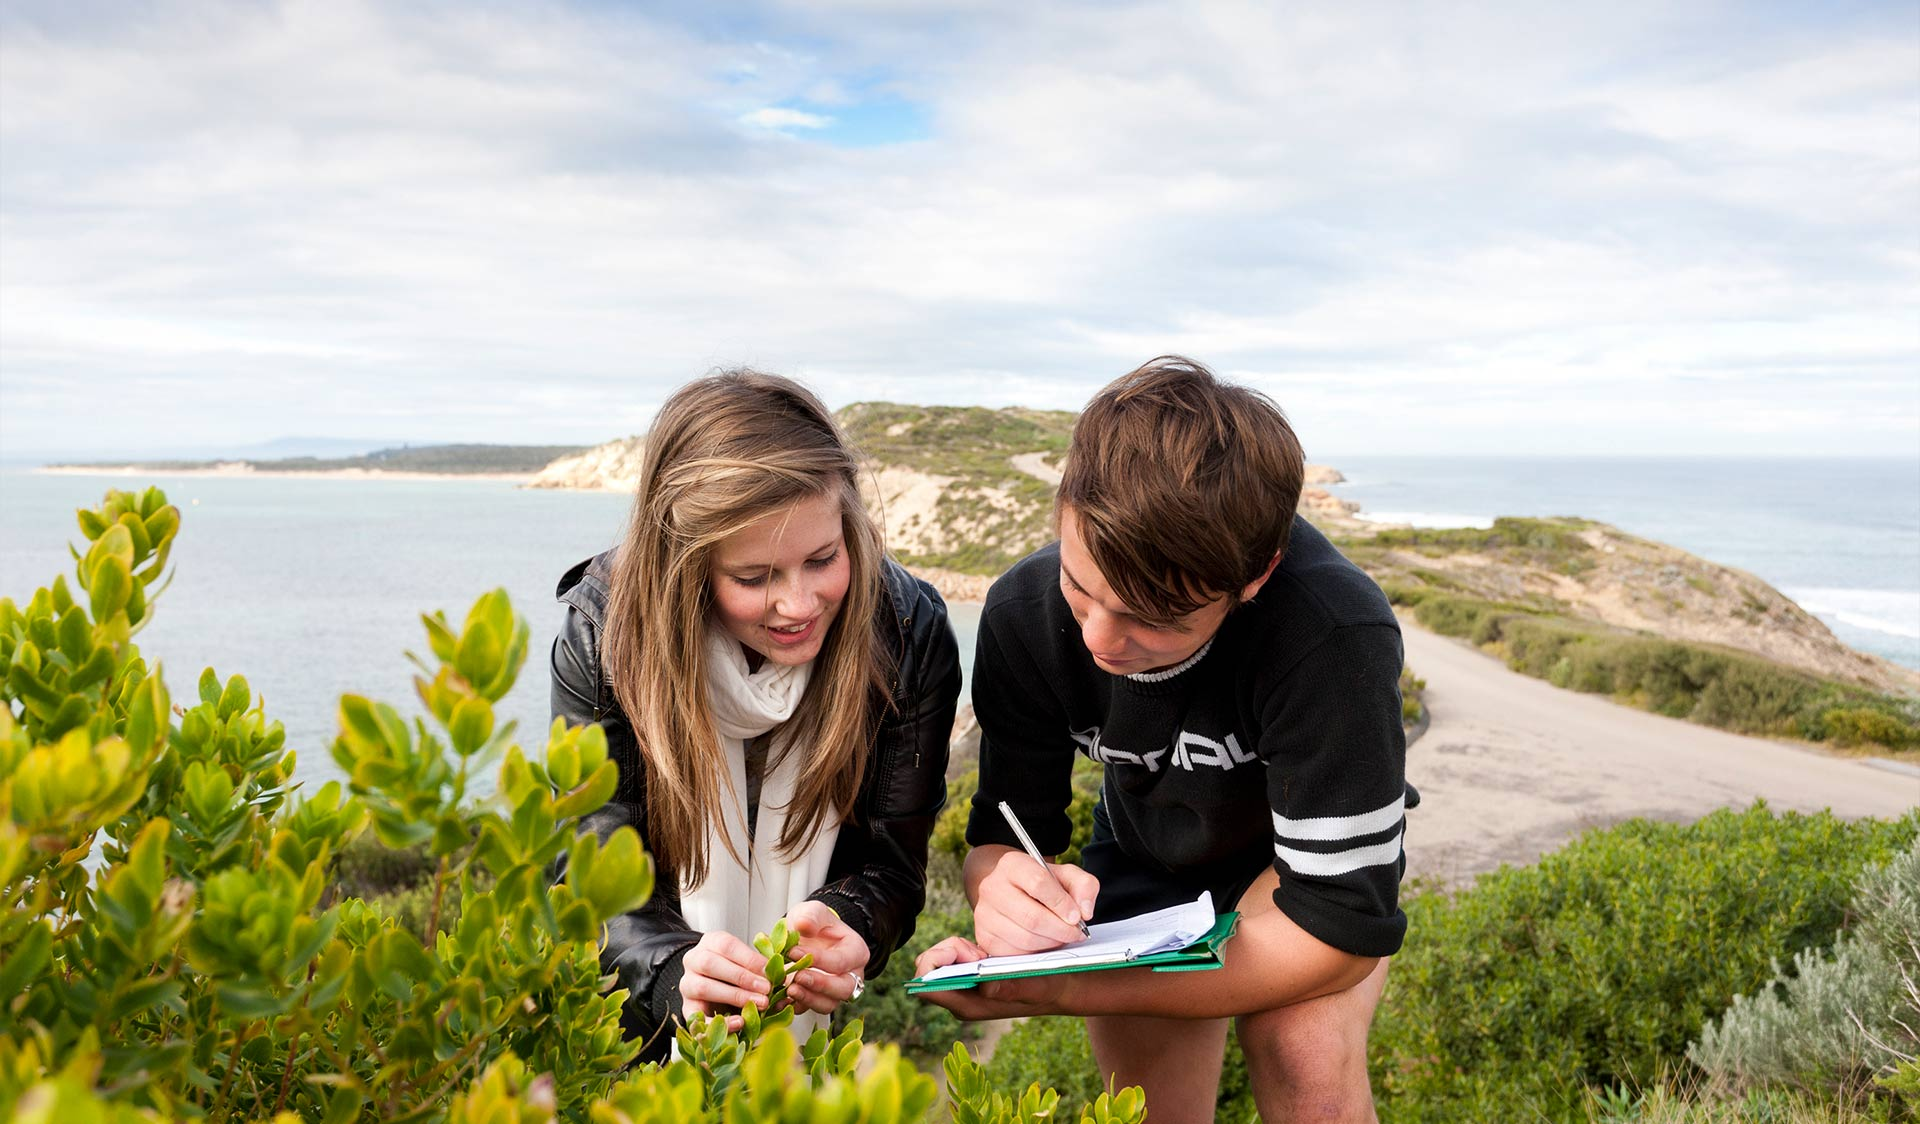 Two teenage children studying plants and making notes